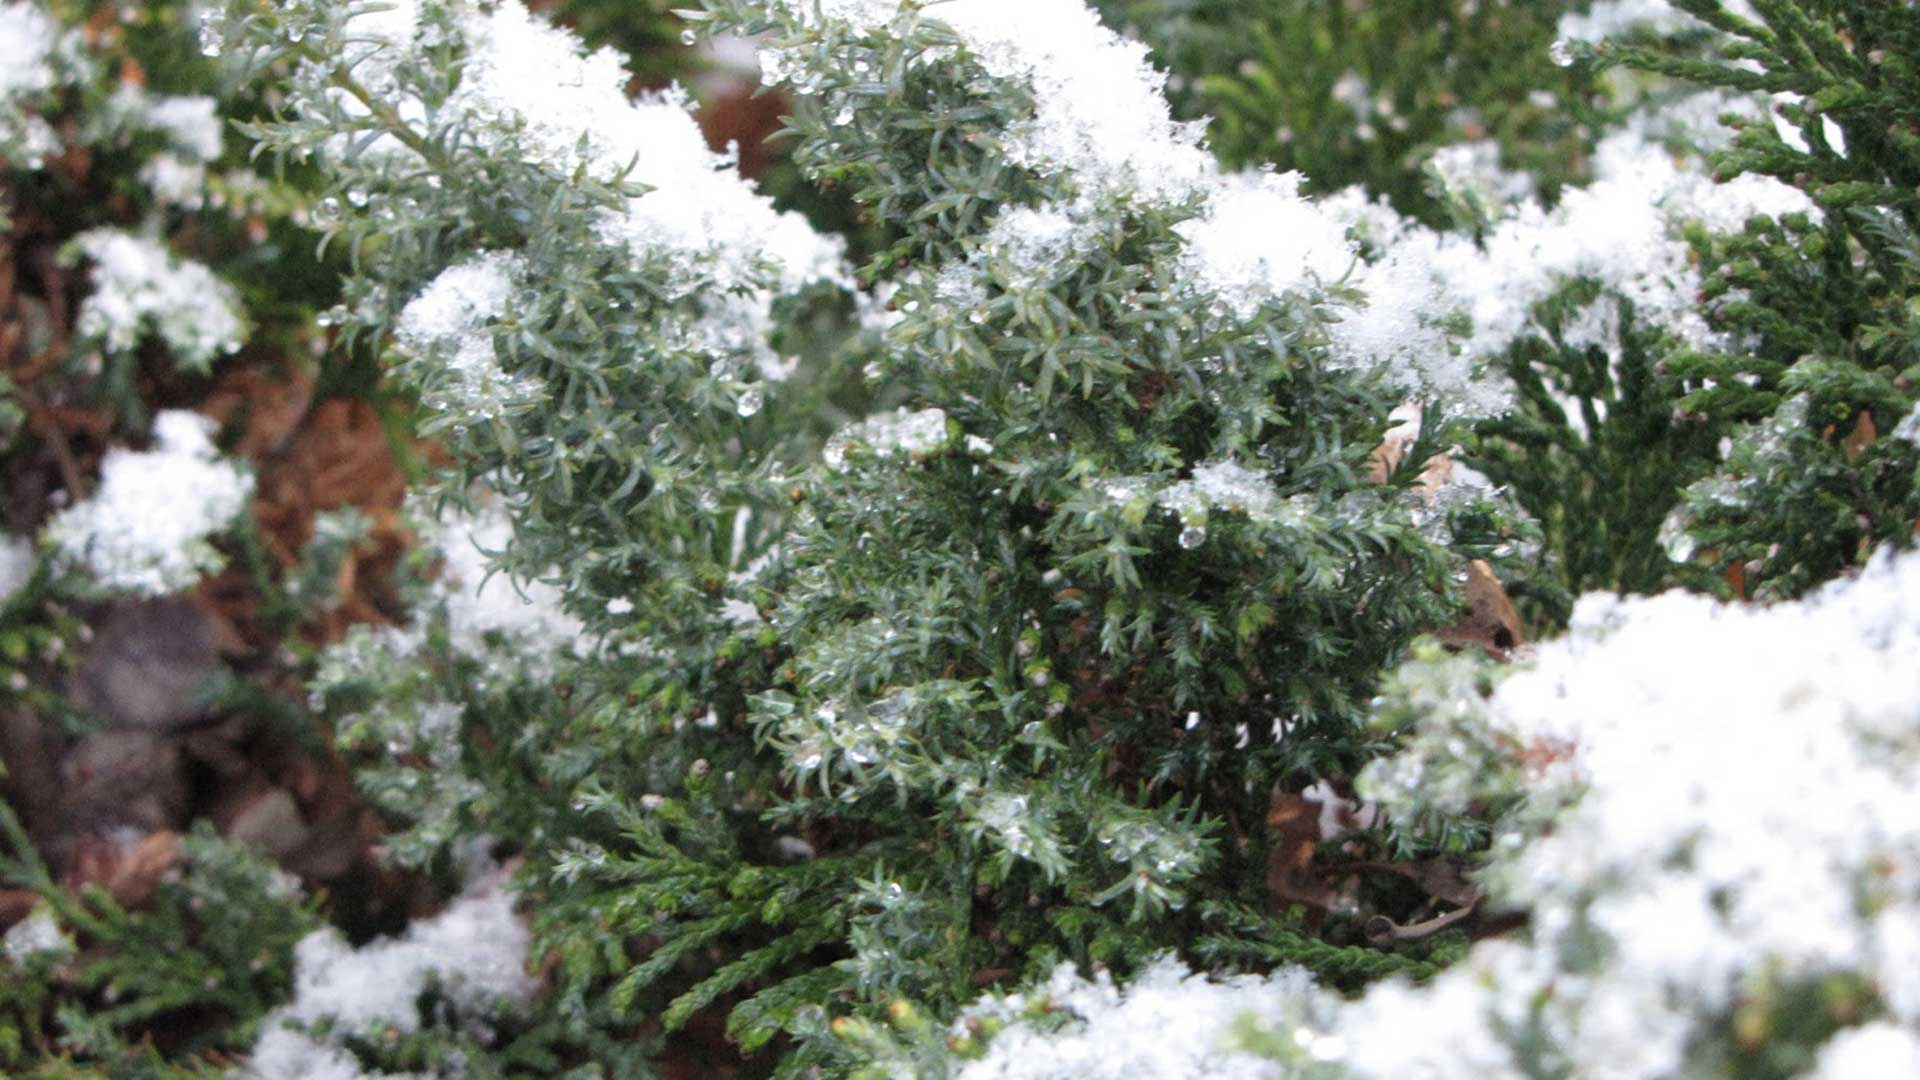 Chamaecyparis obtusa 'Split Rock' with some cold frosting